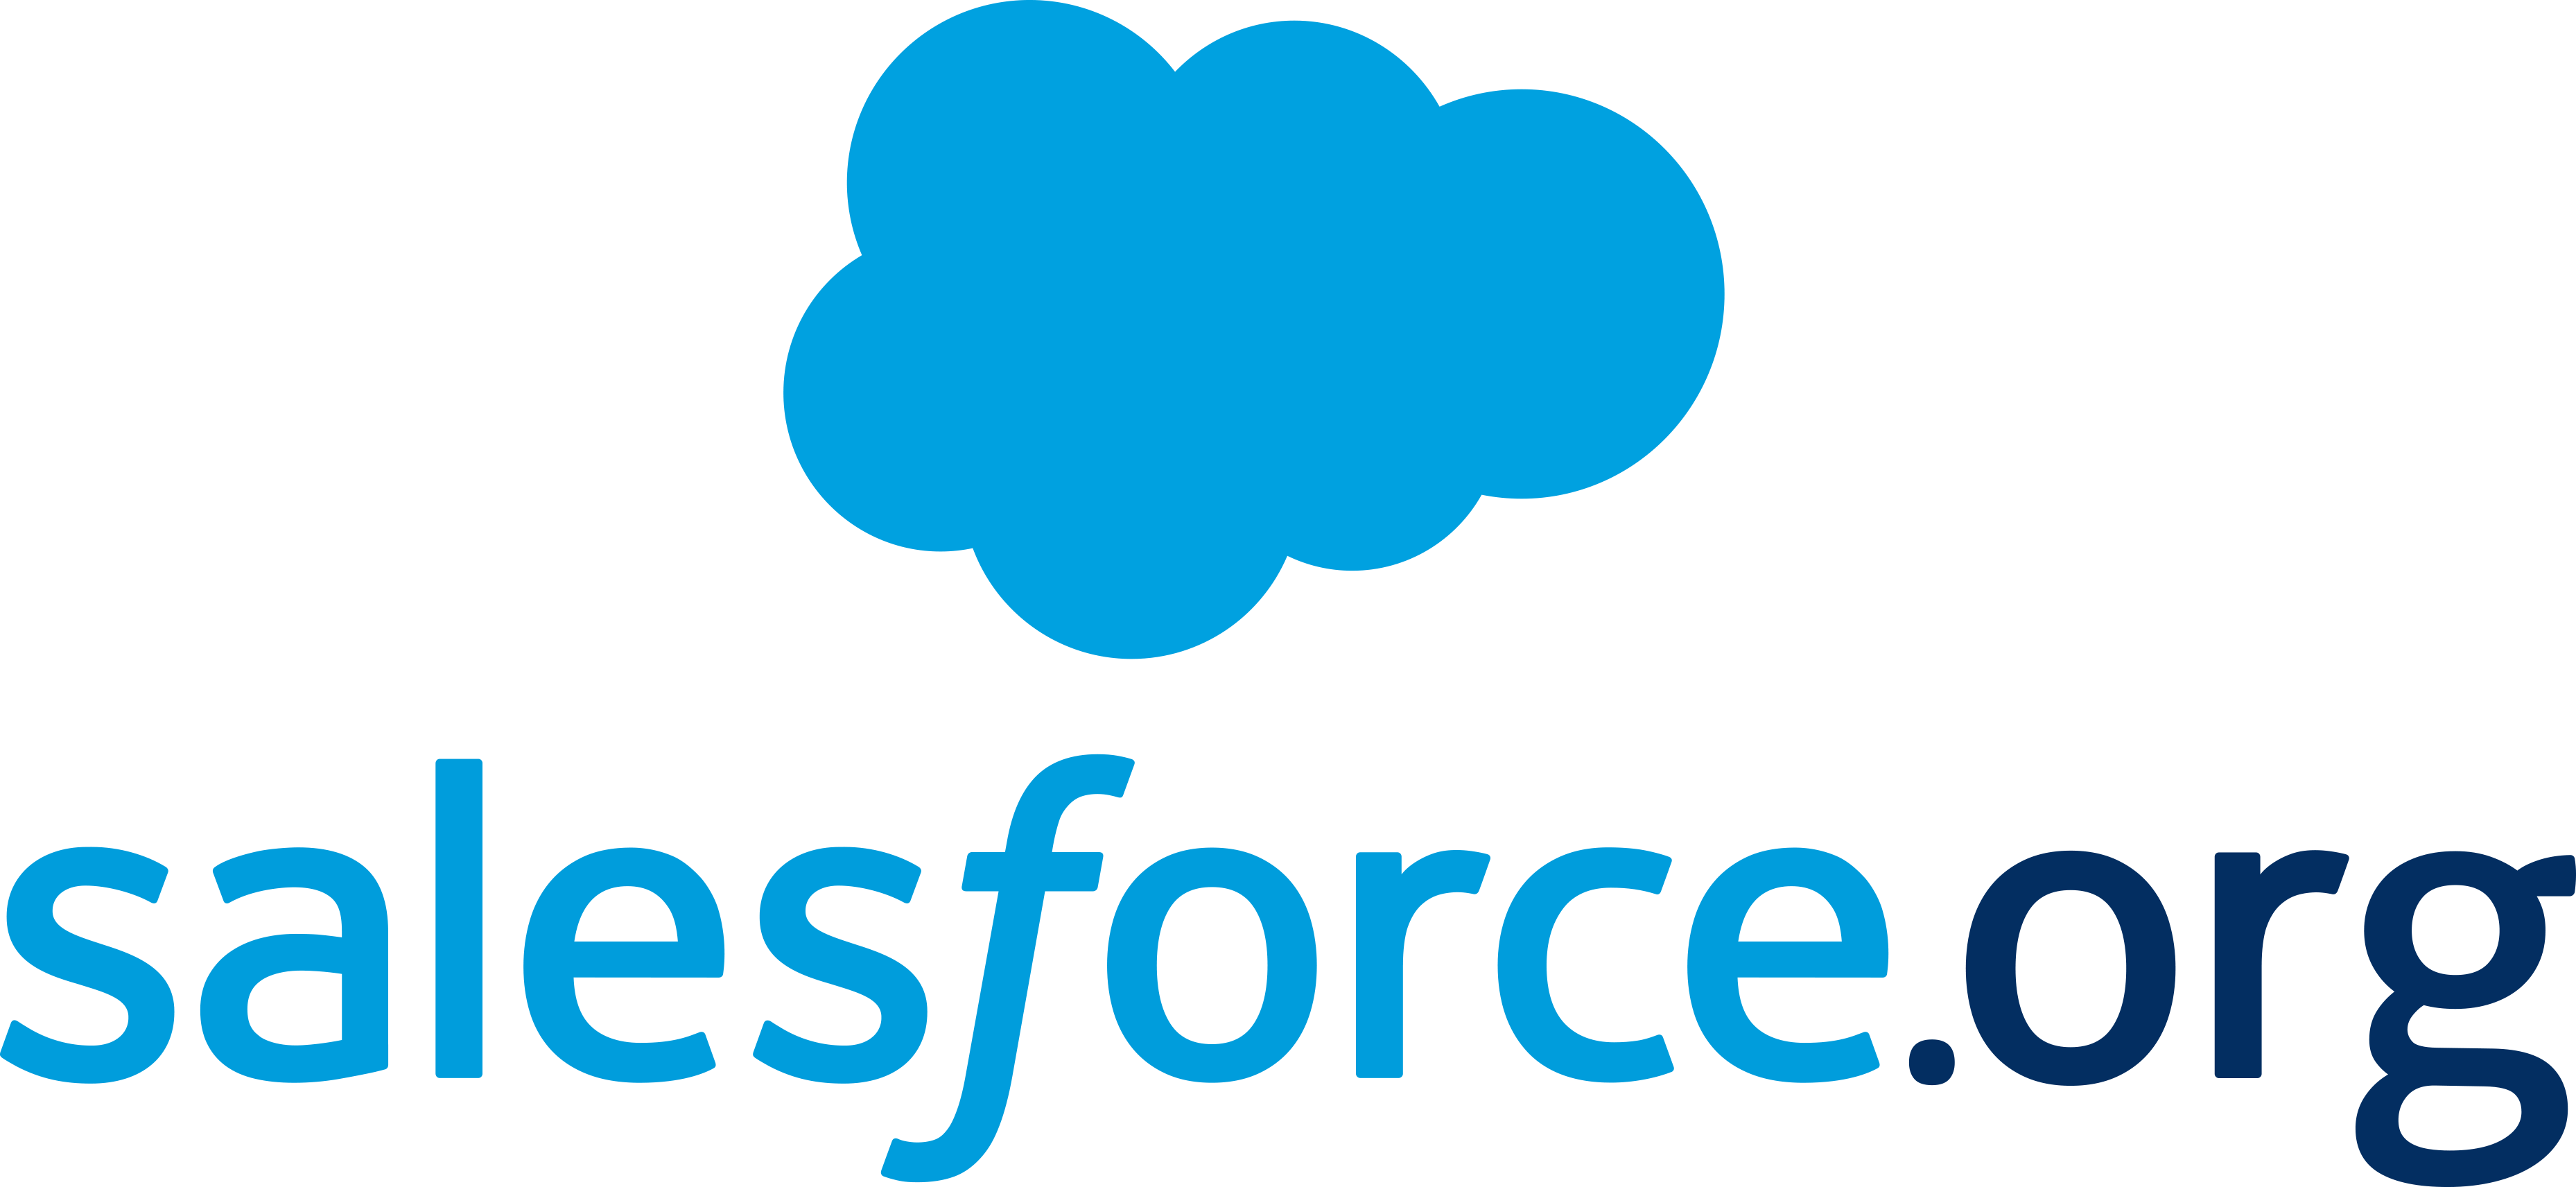 Salesforce Dot Org